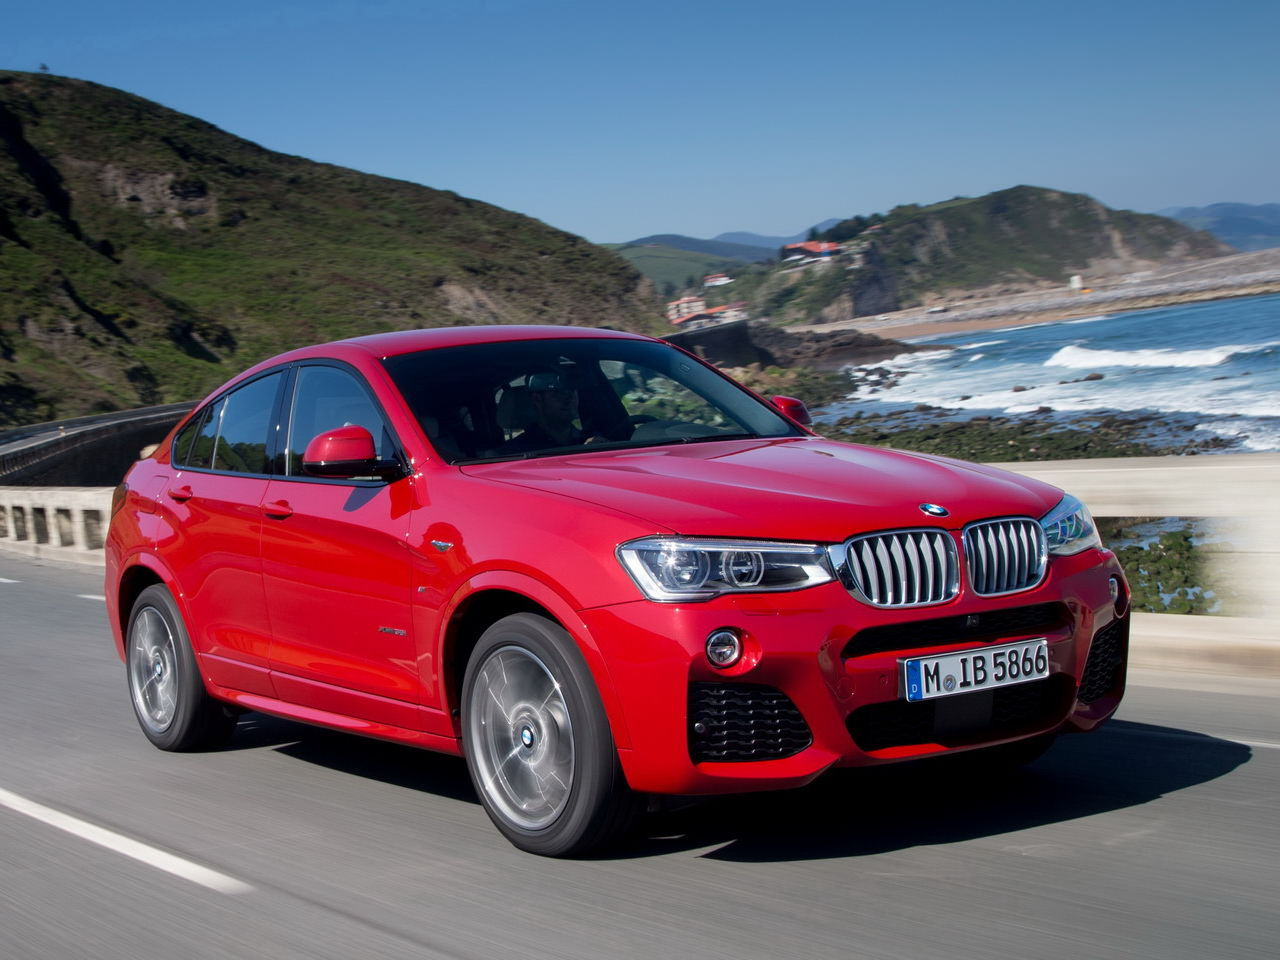 essai du bmw x4 35i 2014 un suv n sous x l 39 argus. Black Bedroom Furniture Sets. Home Design Ideas